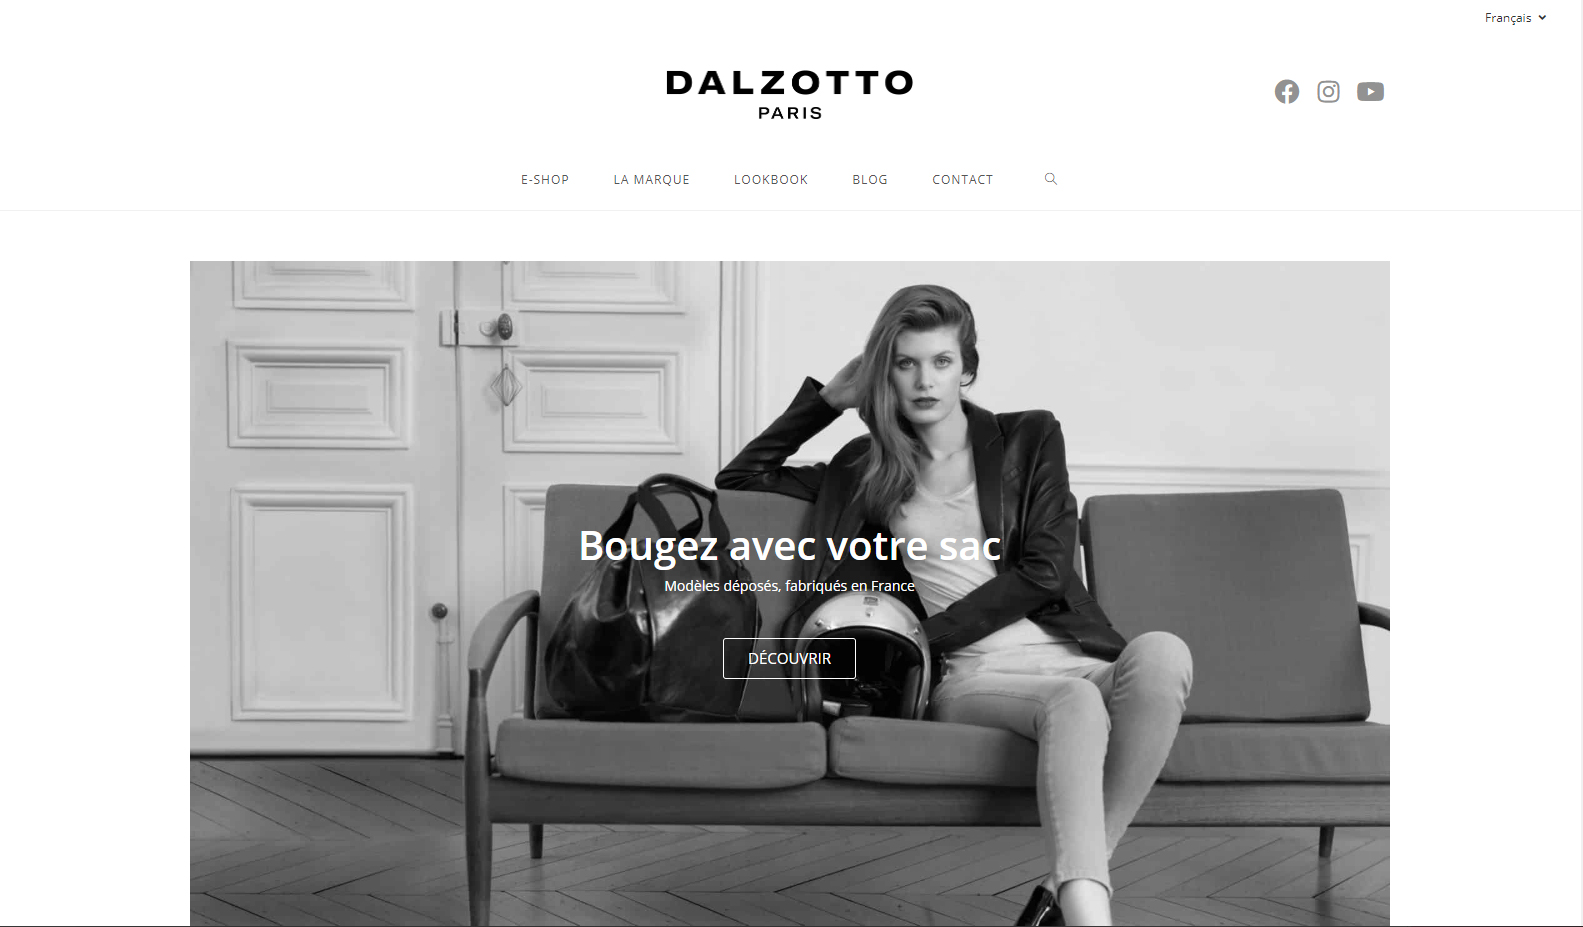 DalZotto Paris